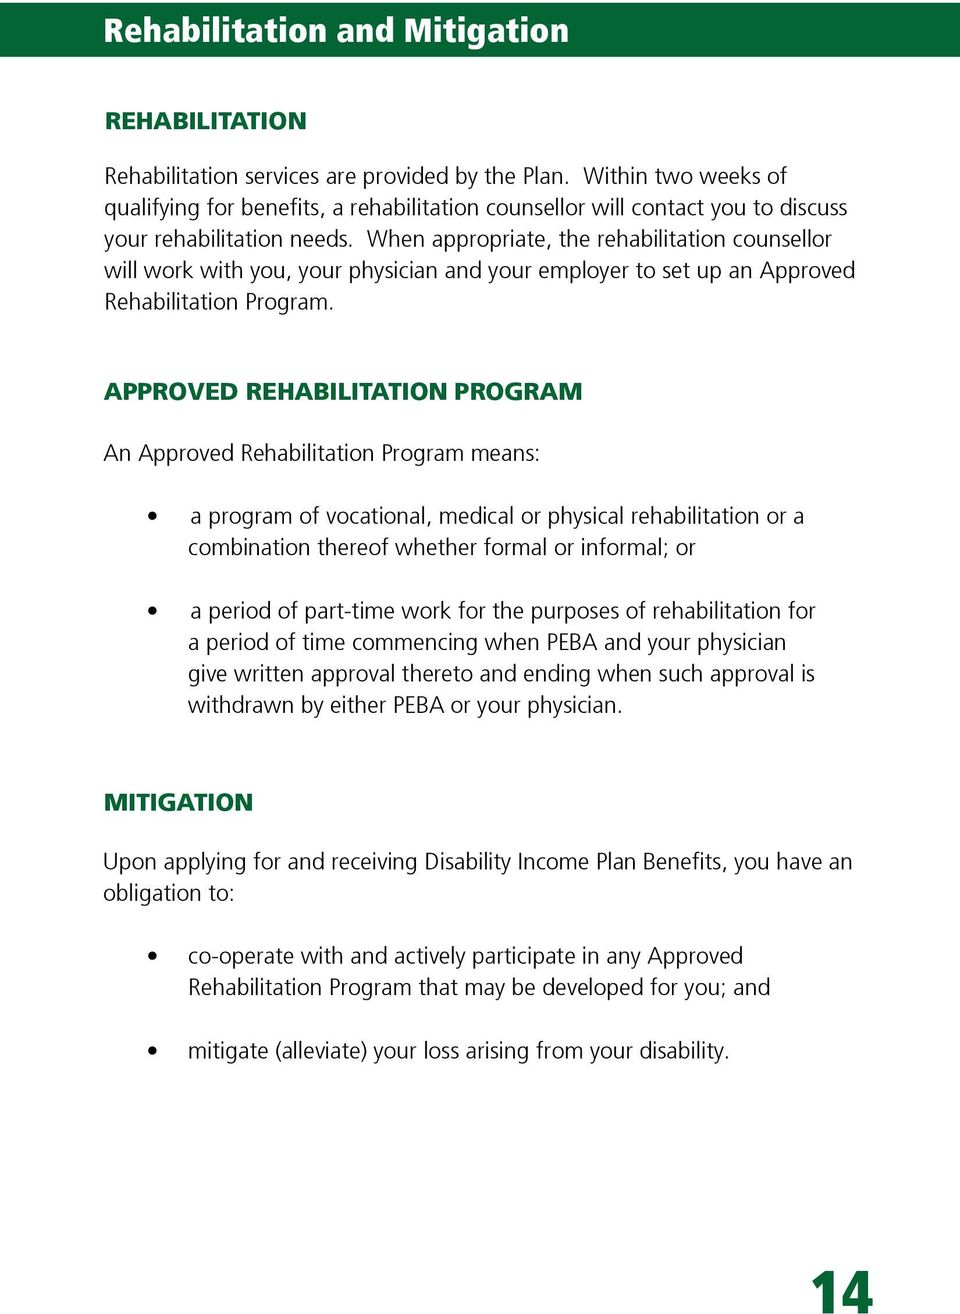 When appropriate, the rehabilitation counsellor will work with you, your physician and your employer to set up an Approved Rehabilitation Program.